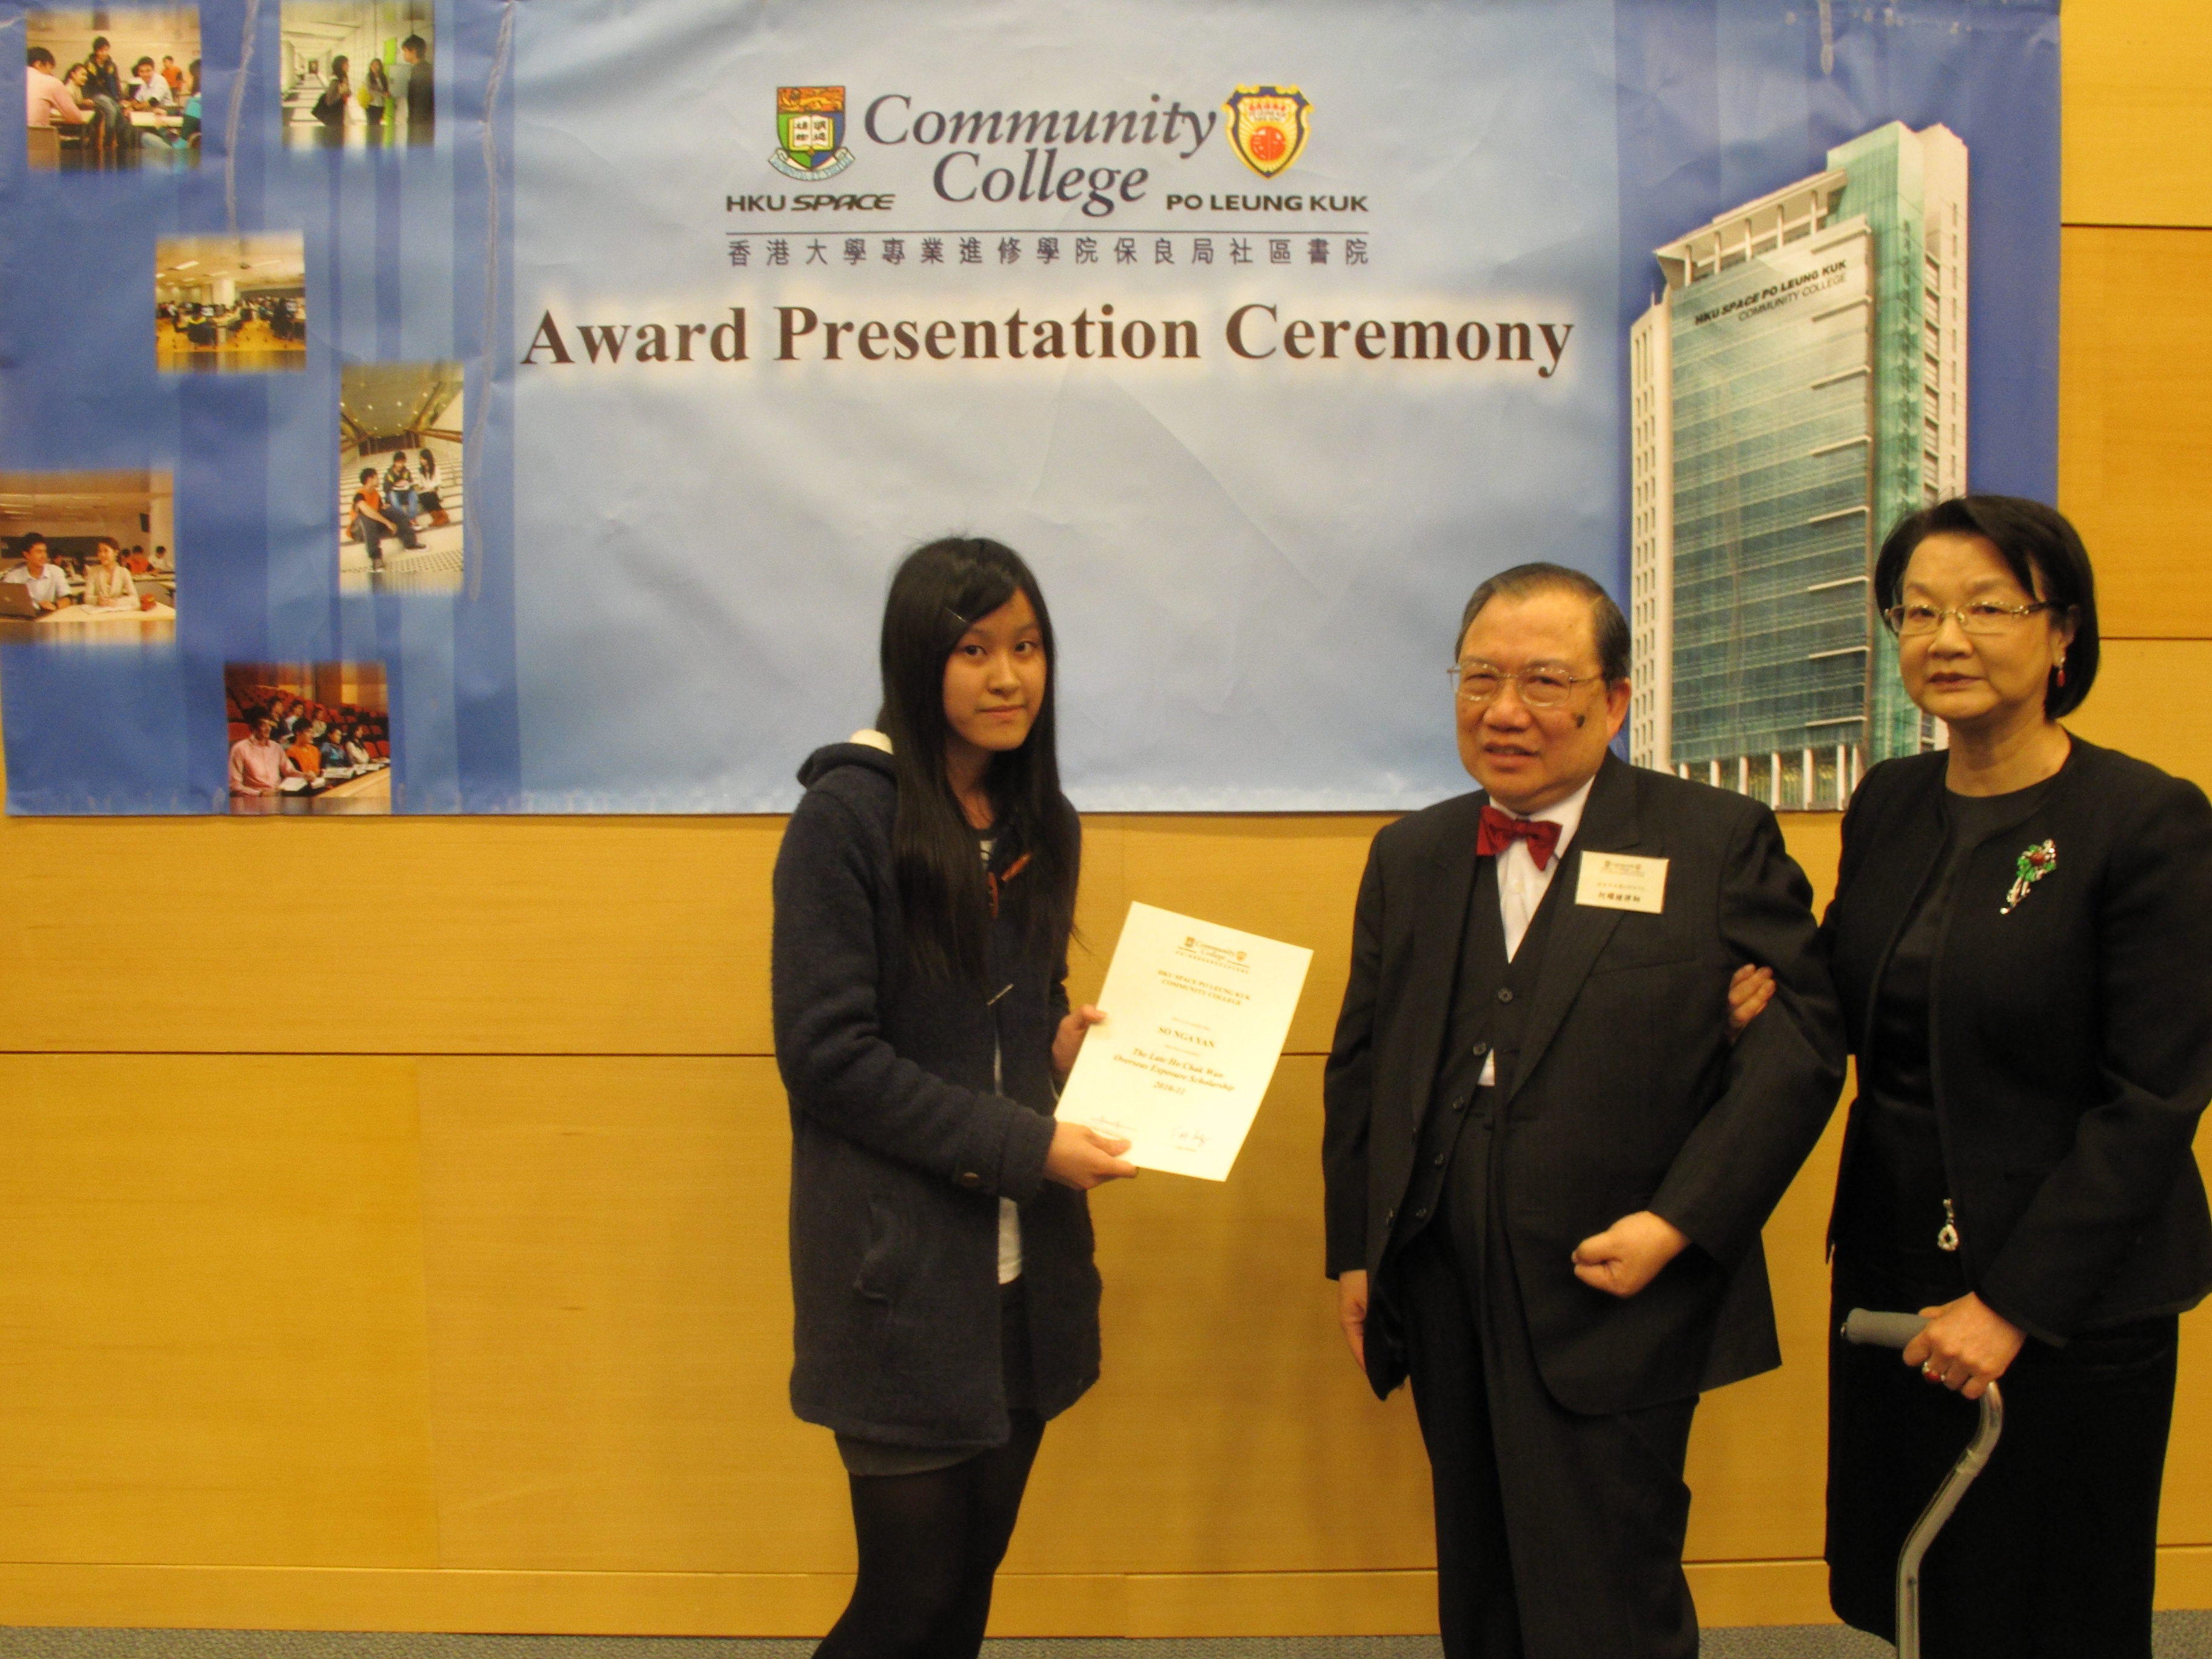 Award Presentation Ceremony 2011 - Photo - 27